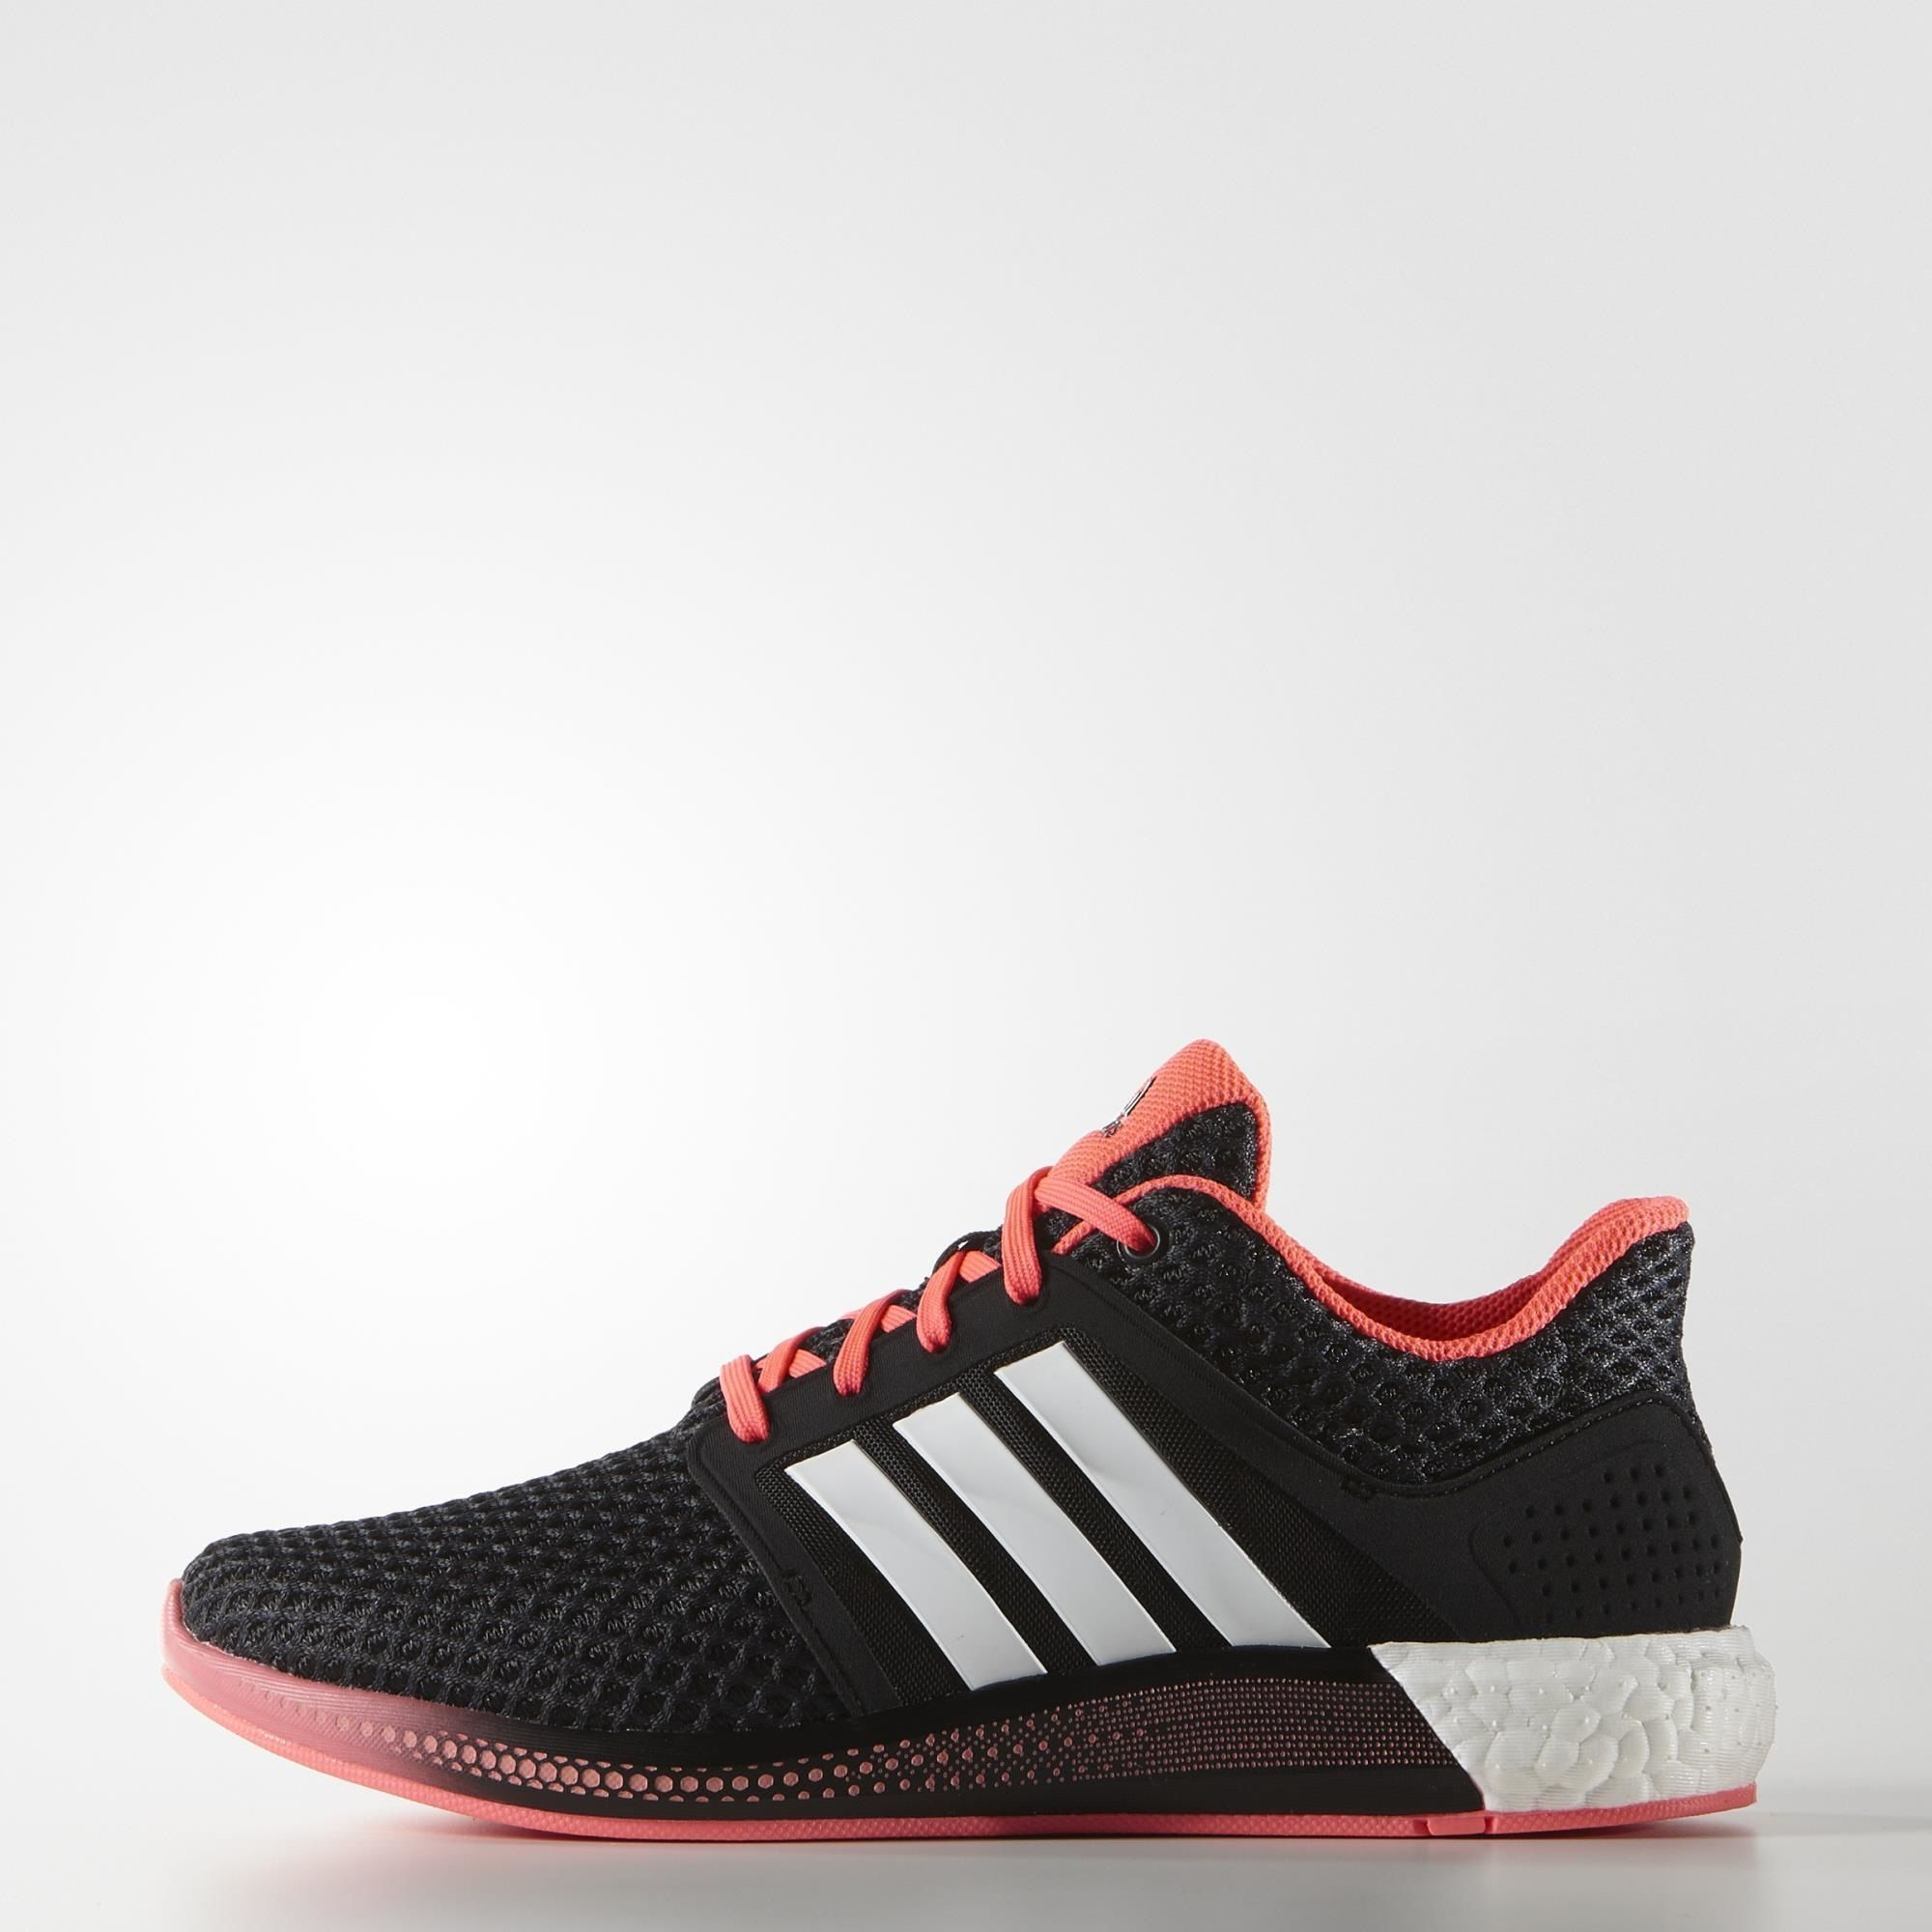 adidas stealth boost